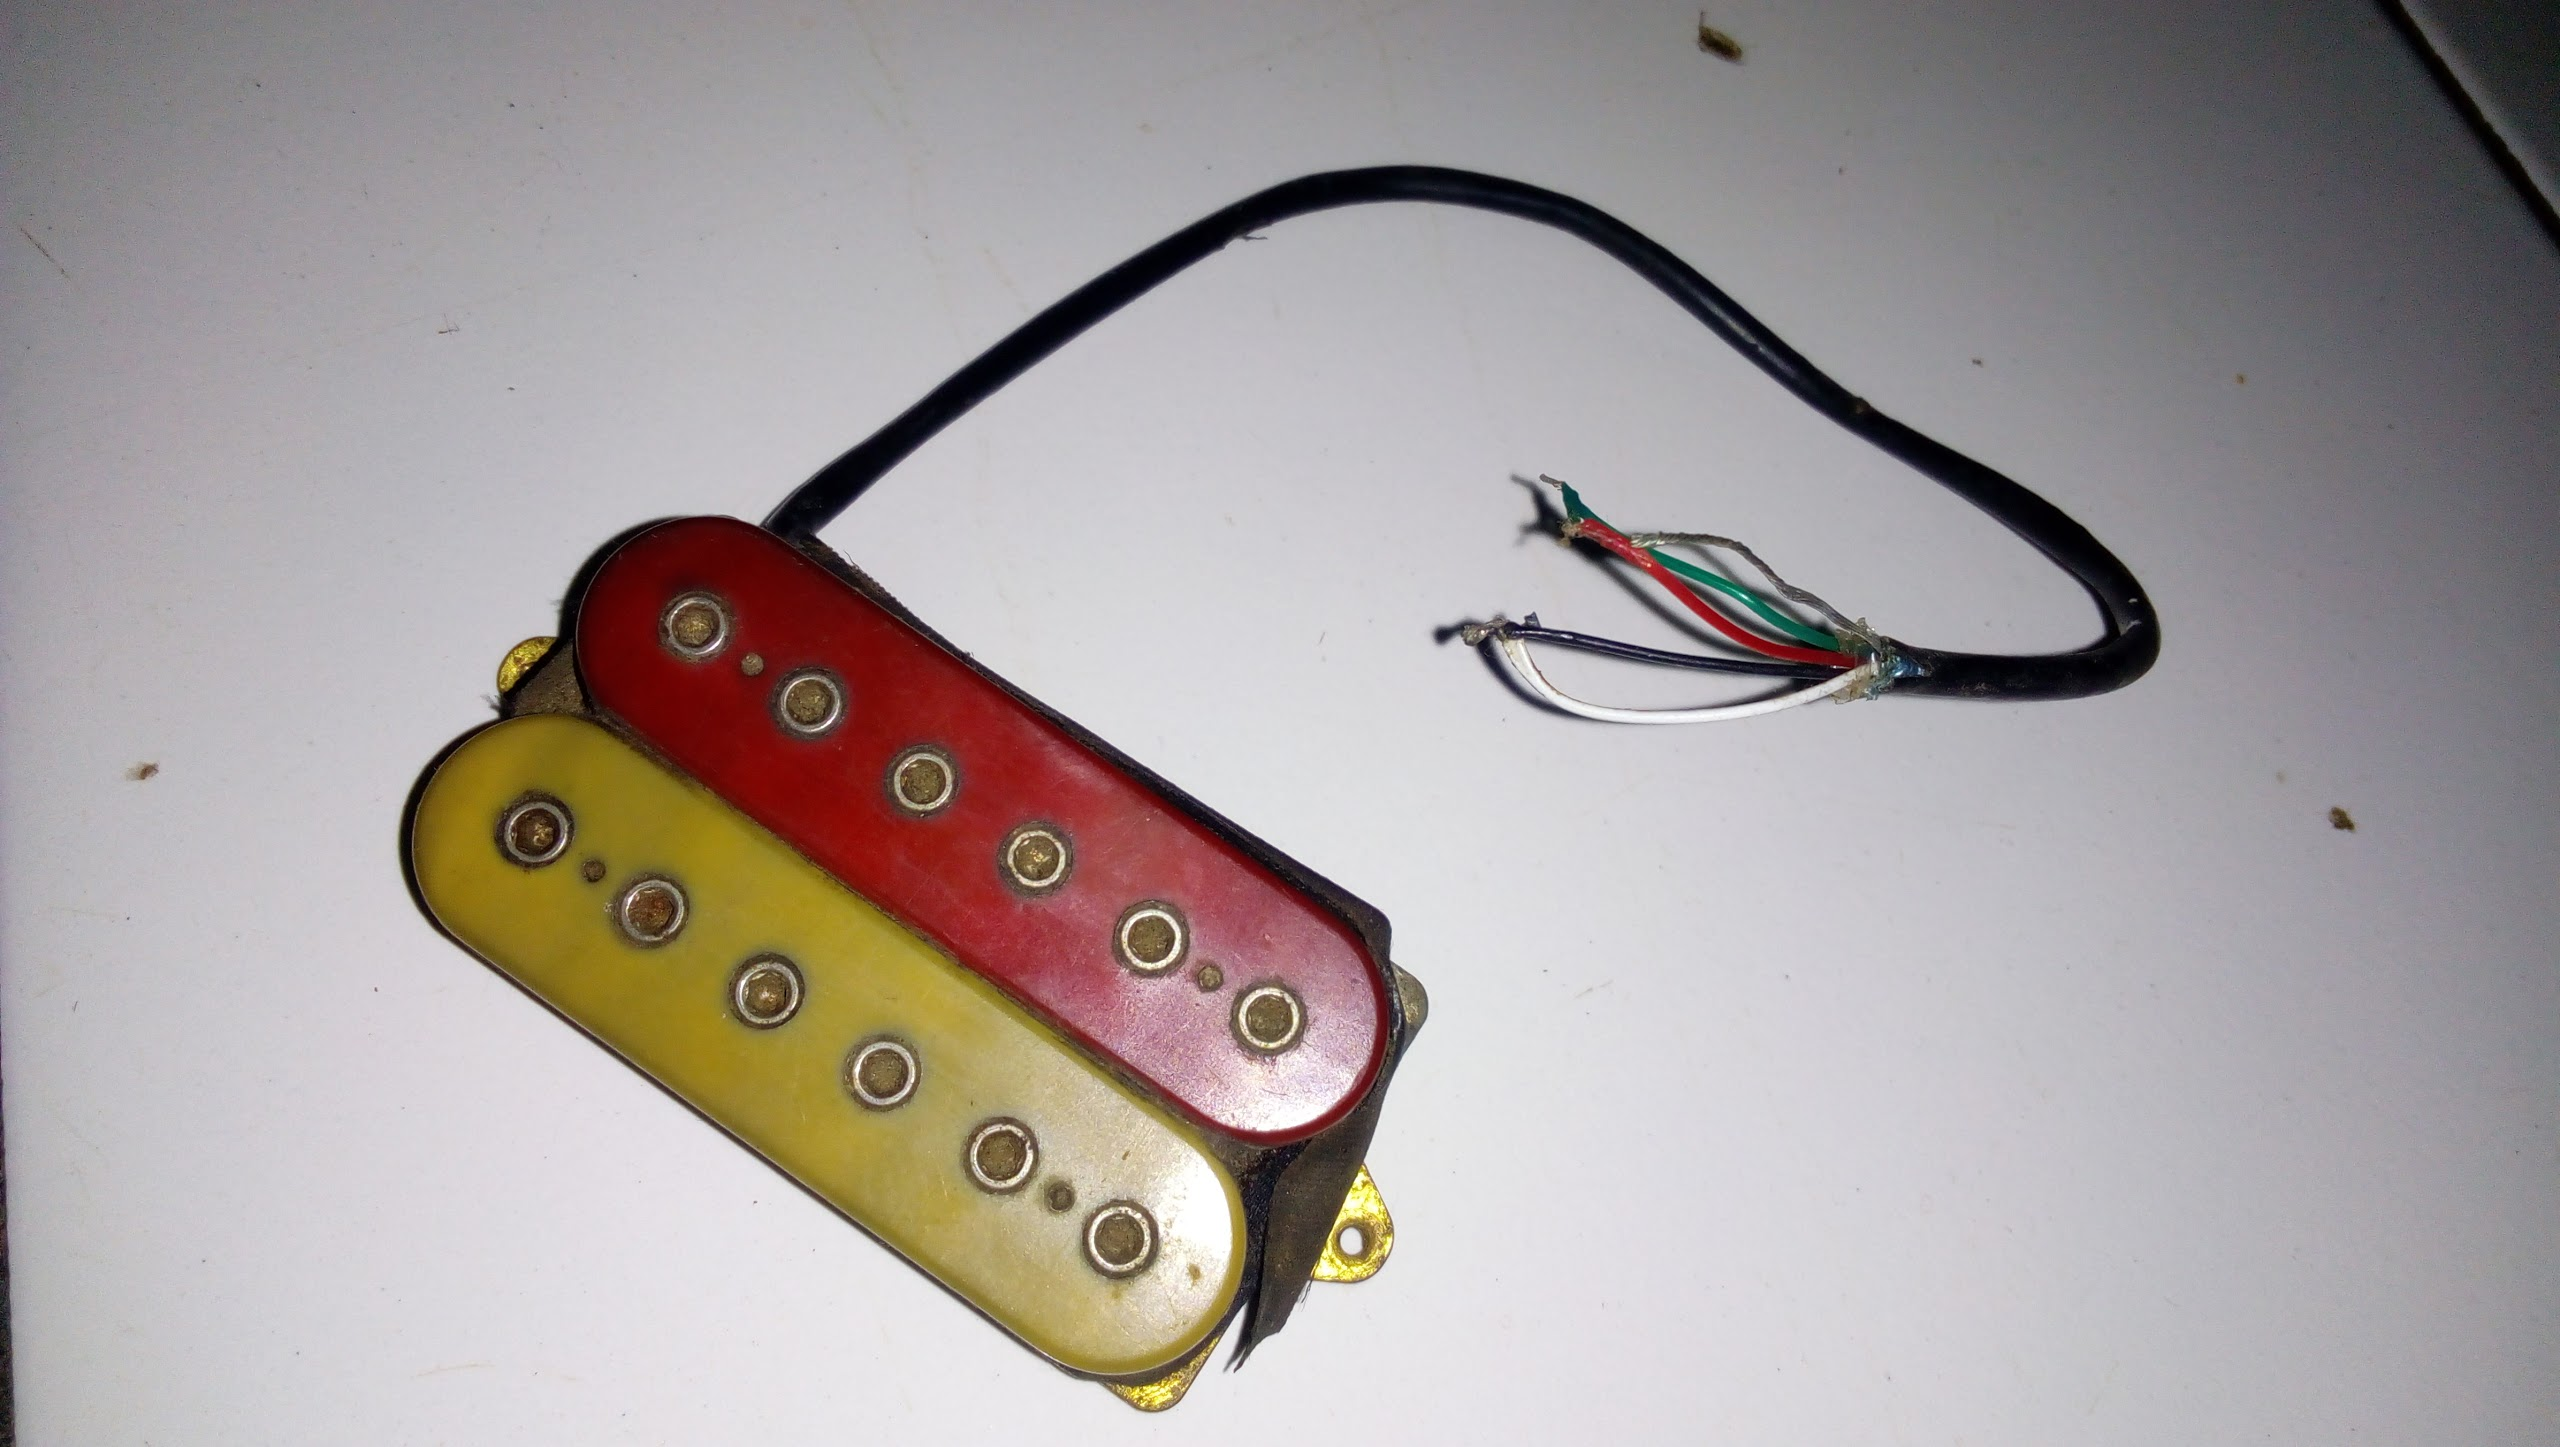 Cute Bulldogsecurity.com Wiring Thick Telecaster 5 Way Switch Wiring Diagram Solid Bdneww 4pdt Switch Schematic Young Excalibur Remote Start Installation OrangeHss Guitar Wiring Dimarzio DP156 The Humbucker From Hell Forsale Used   TANGSEL ..